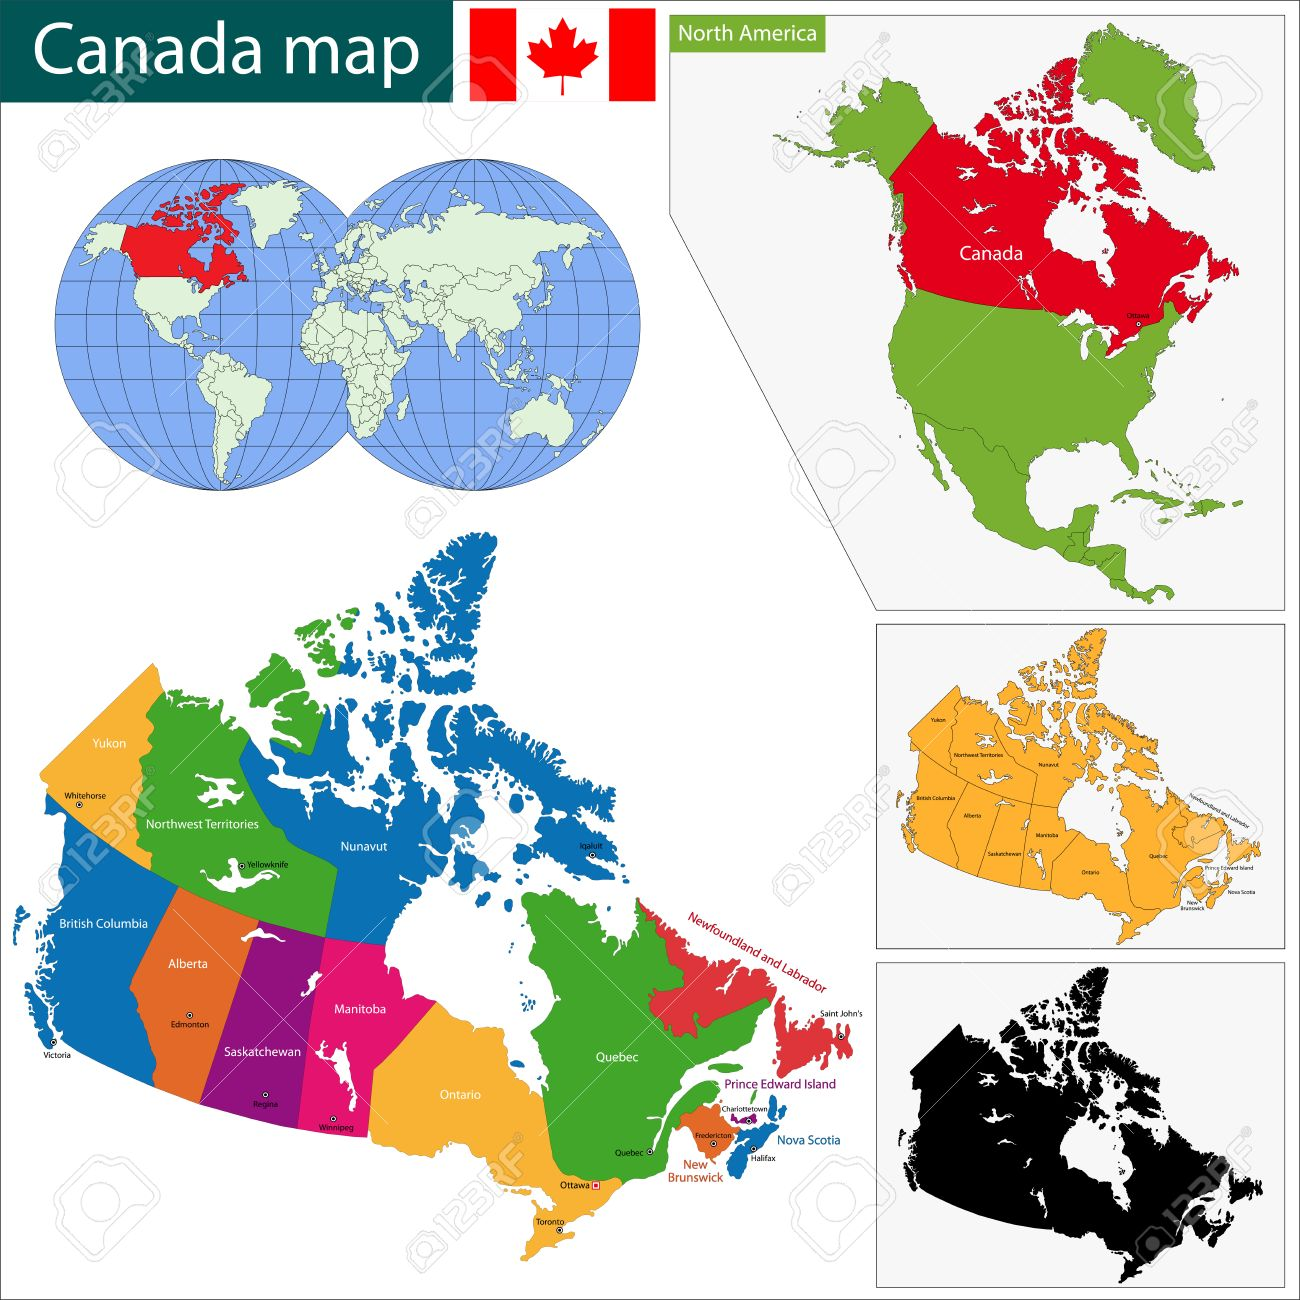 Map Of Canada With Provinces And Capital Cities.Colorful Canada Map With Provinces And Capital Cities